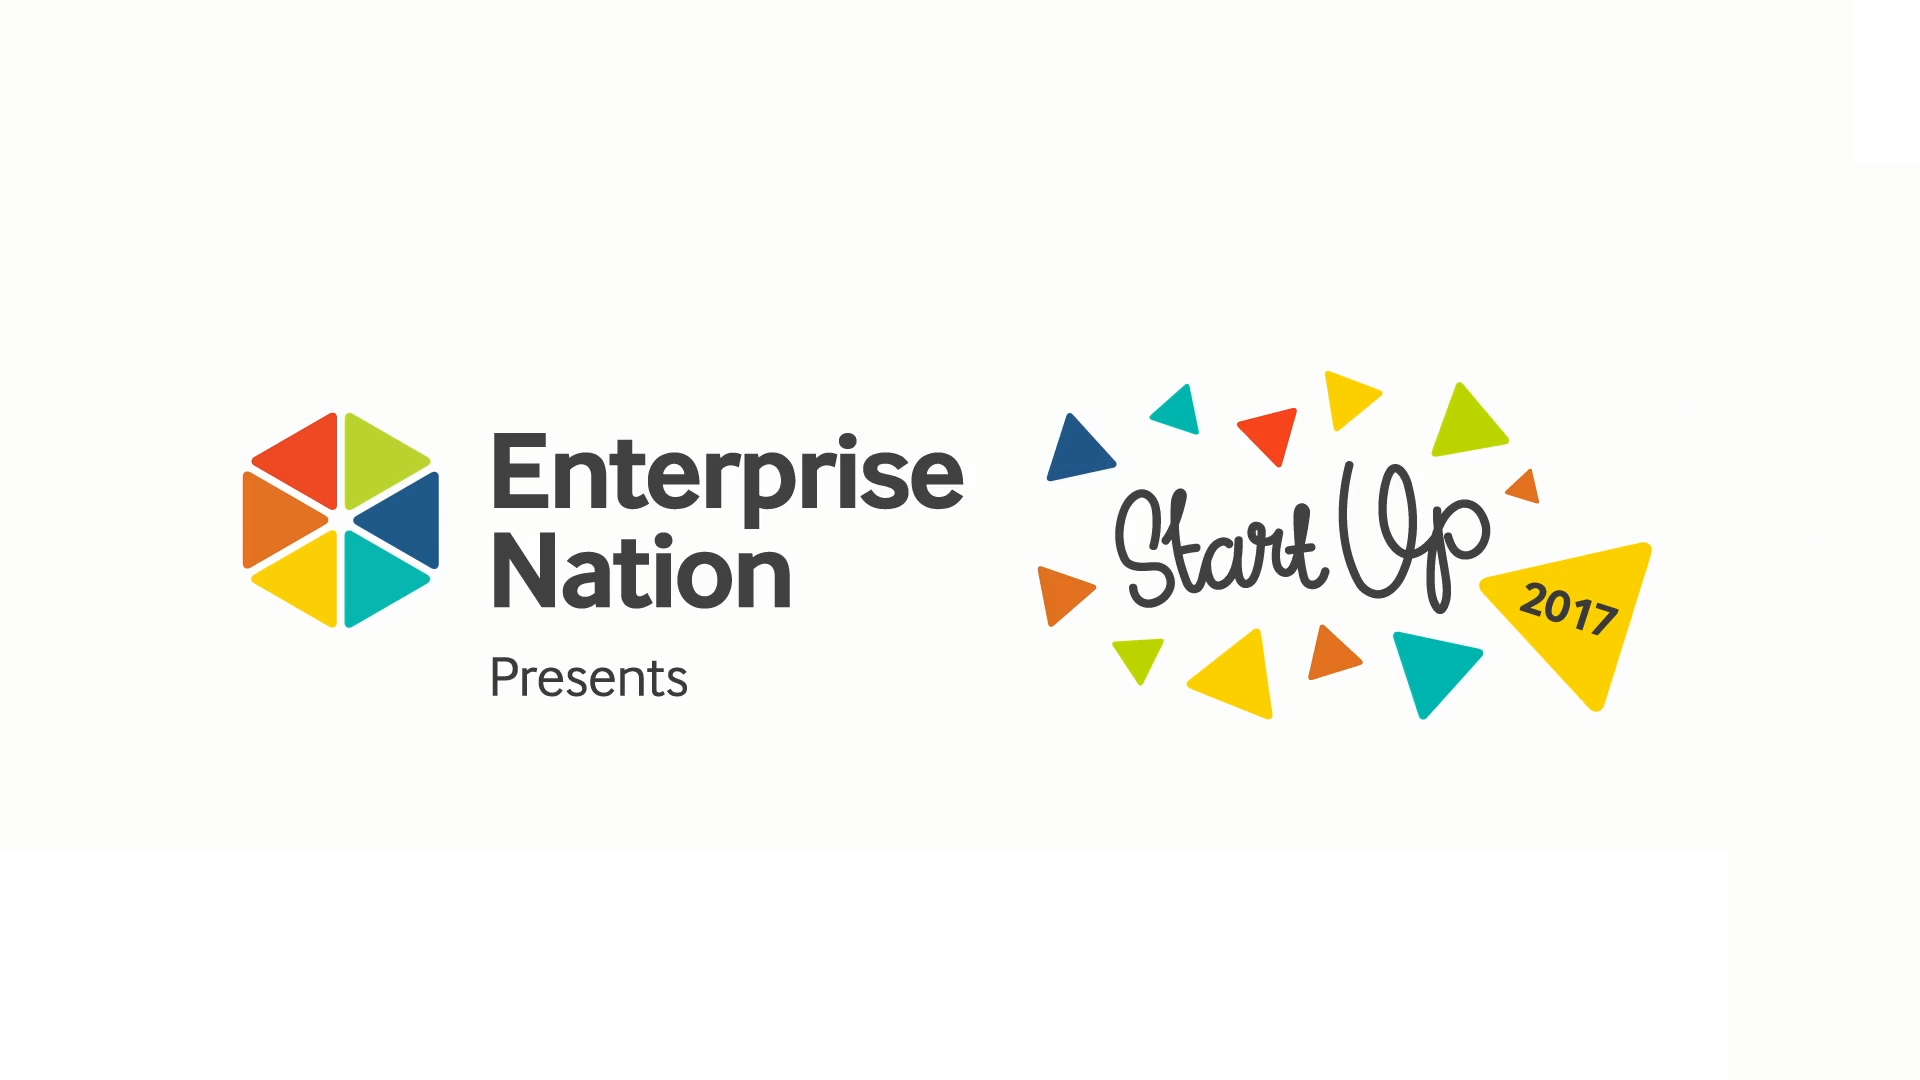 Enterprise Nation – Startup 2017